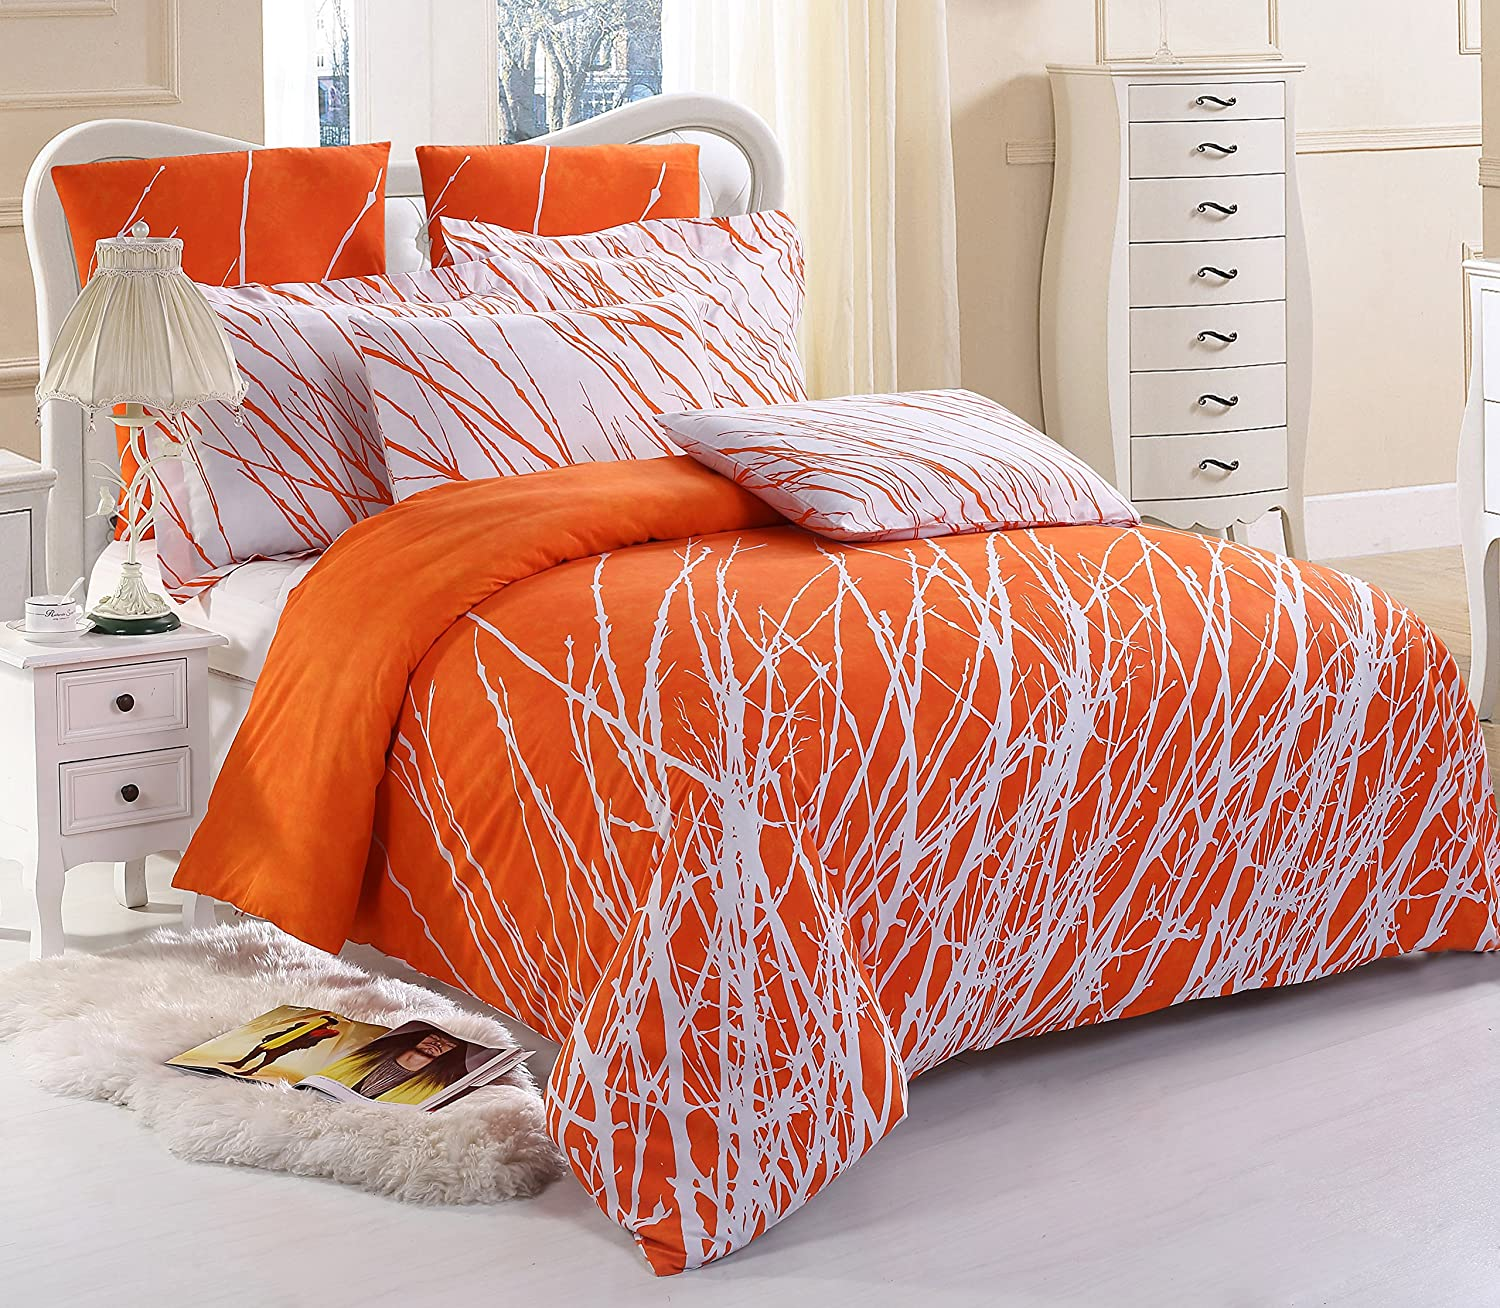 tangerine comforters comforter bedding grey orange queen adult sets full floral c set and white damask piece